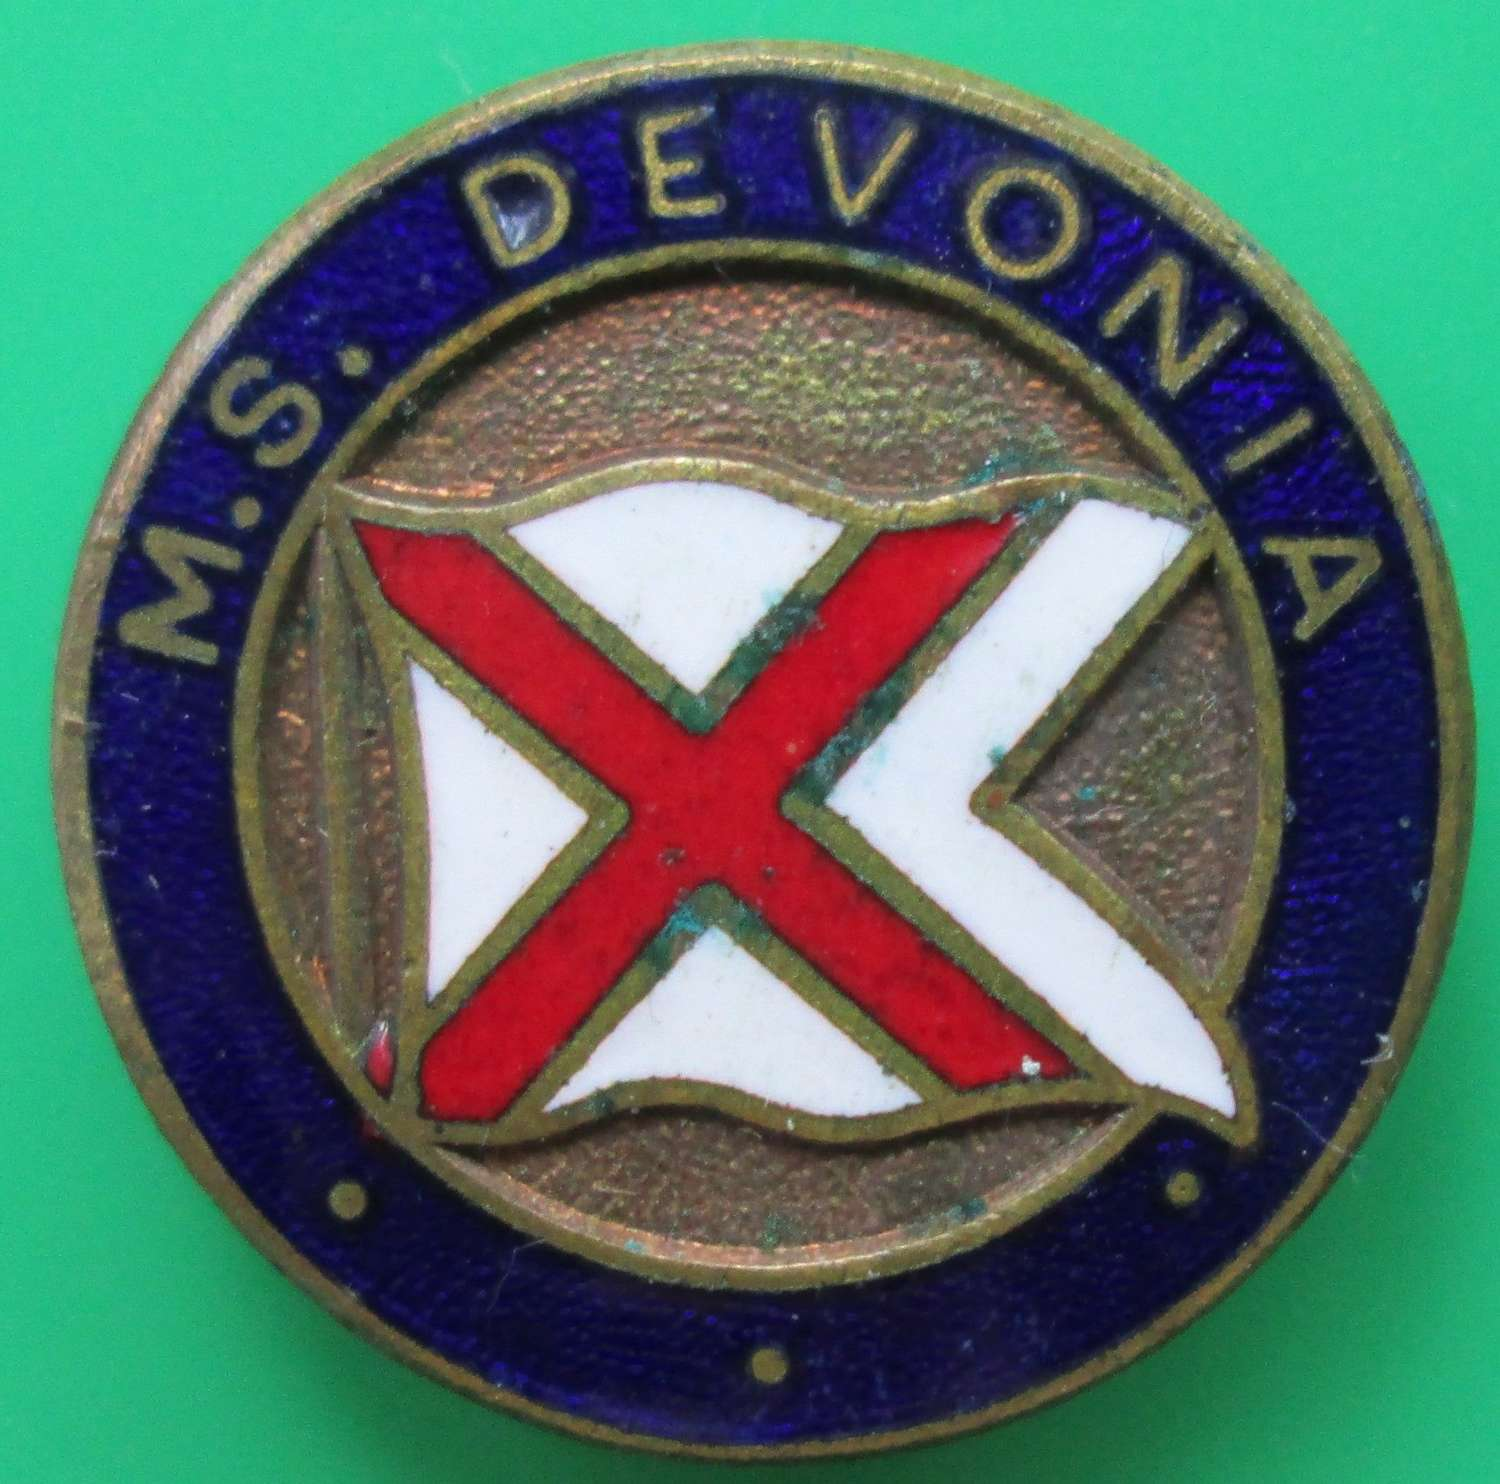 A PIN BADGE FOR THE MERCHANT SHIP DEVONIA